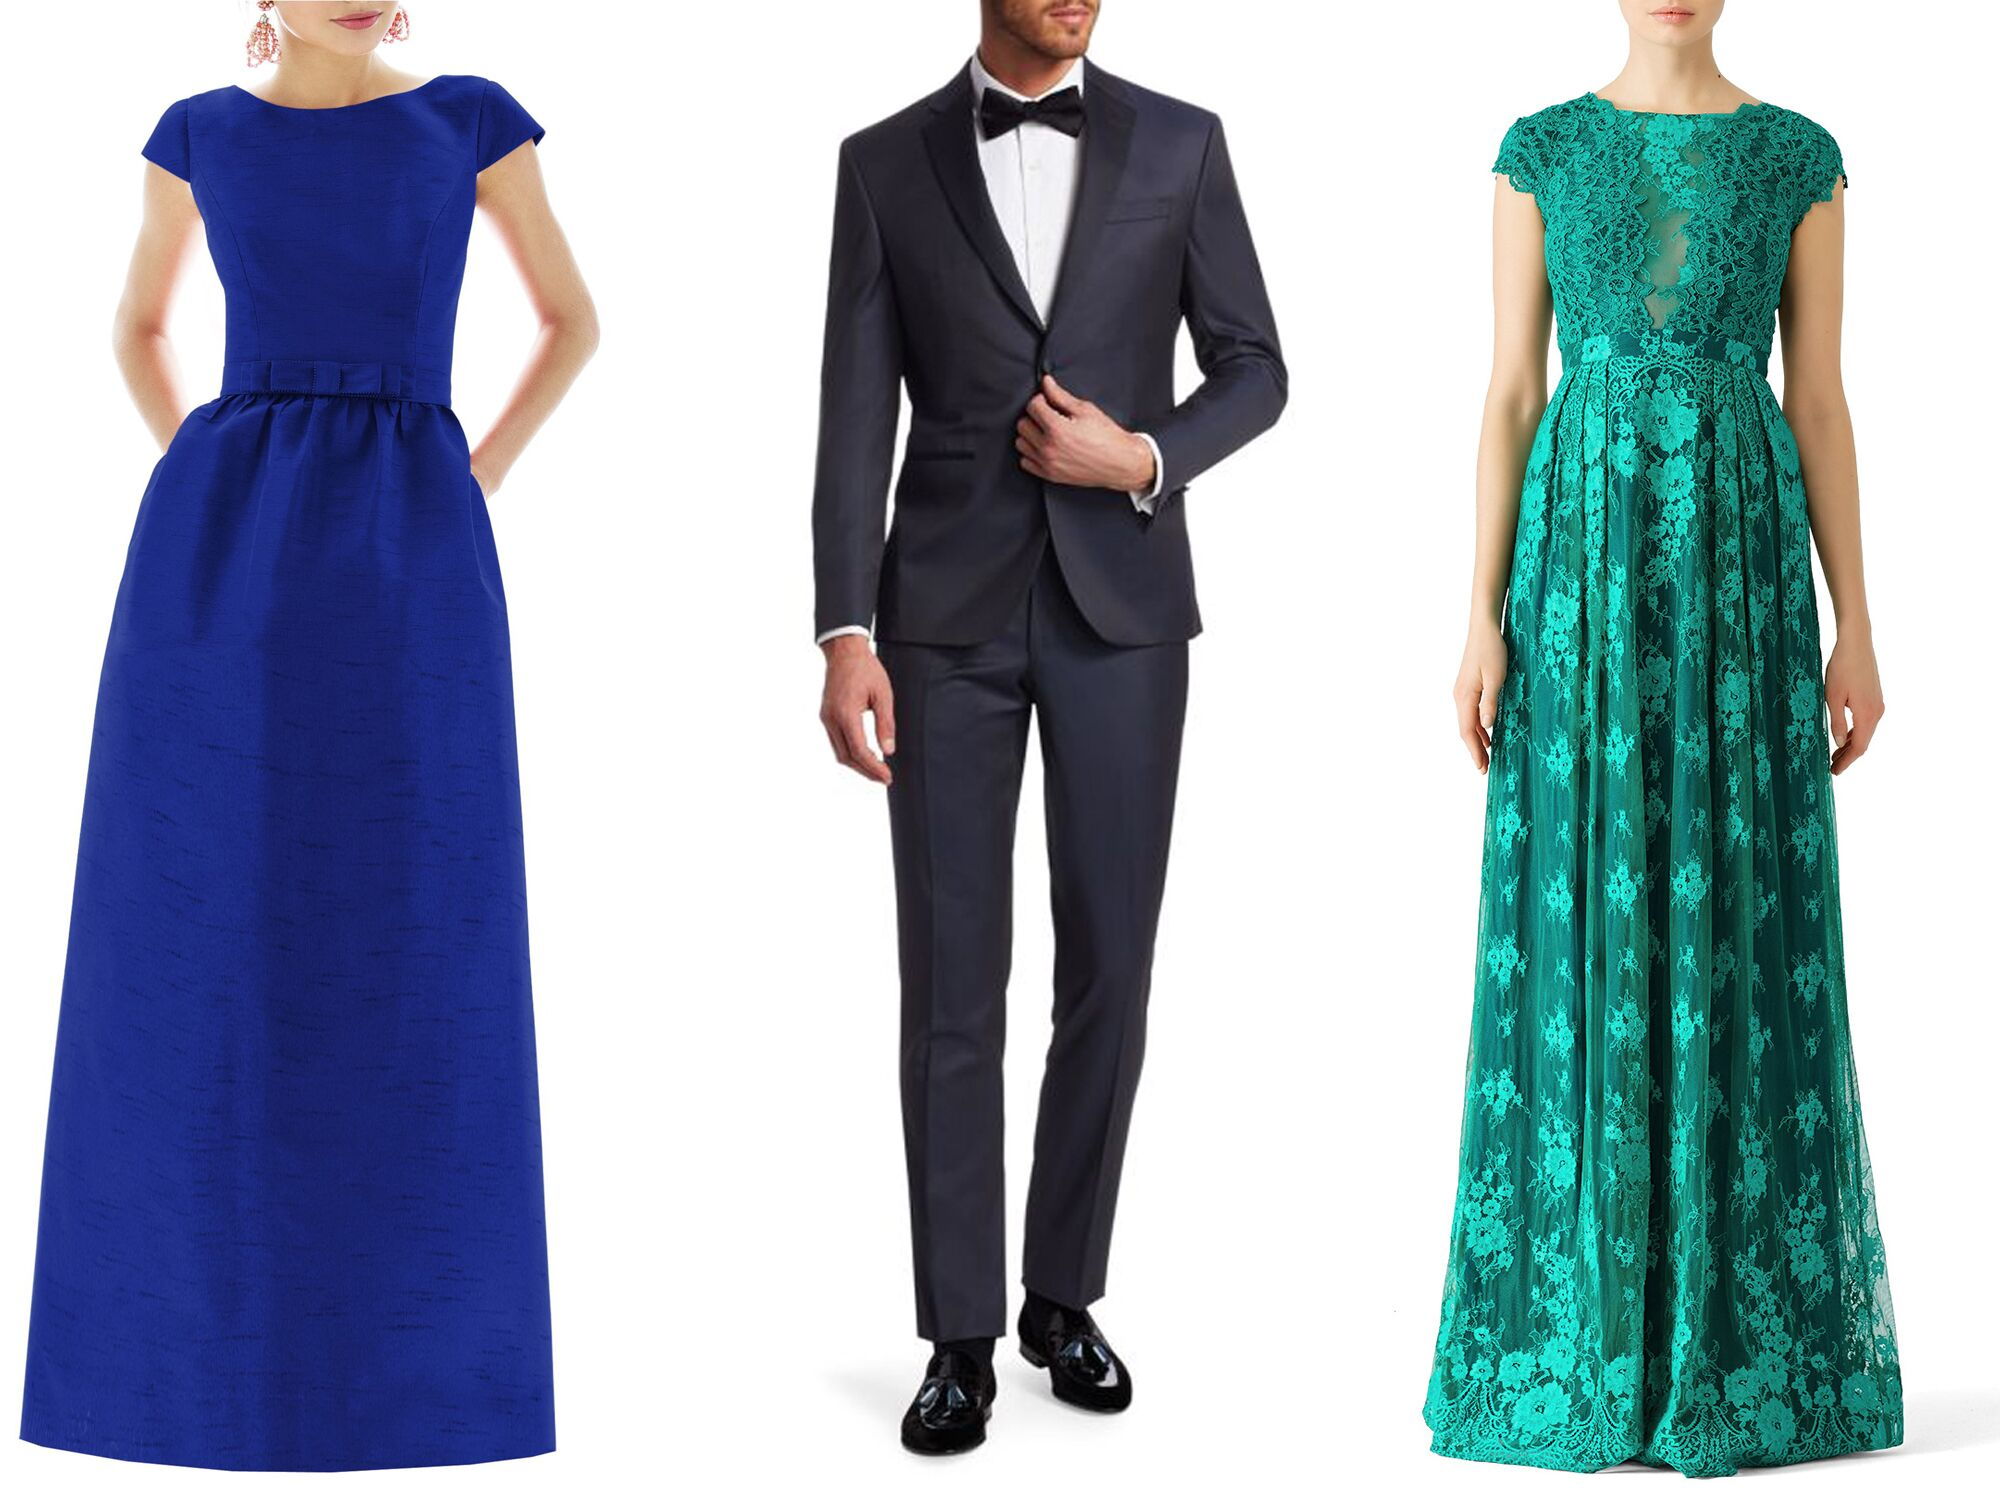 What to Wear to a Black Tie Wedding